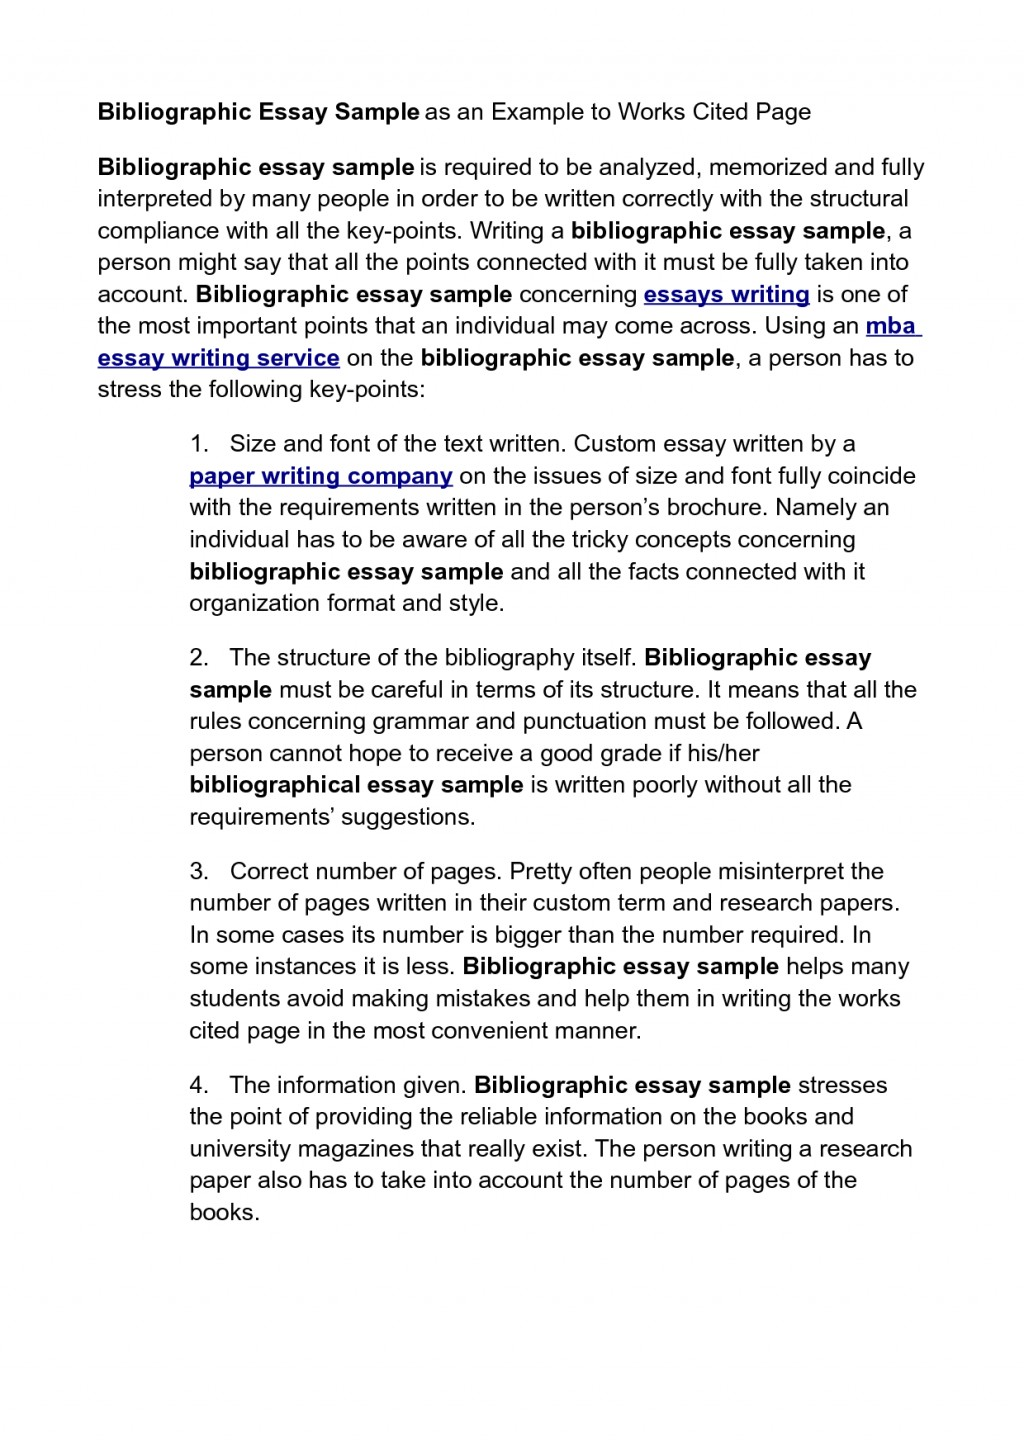 018 How To Cite An Essay Example Sample Persuasive With Works Cited Of Mla L Archaicawful Referencing In A Book Apa Style Text Large